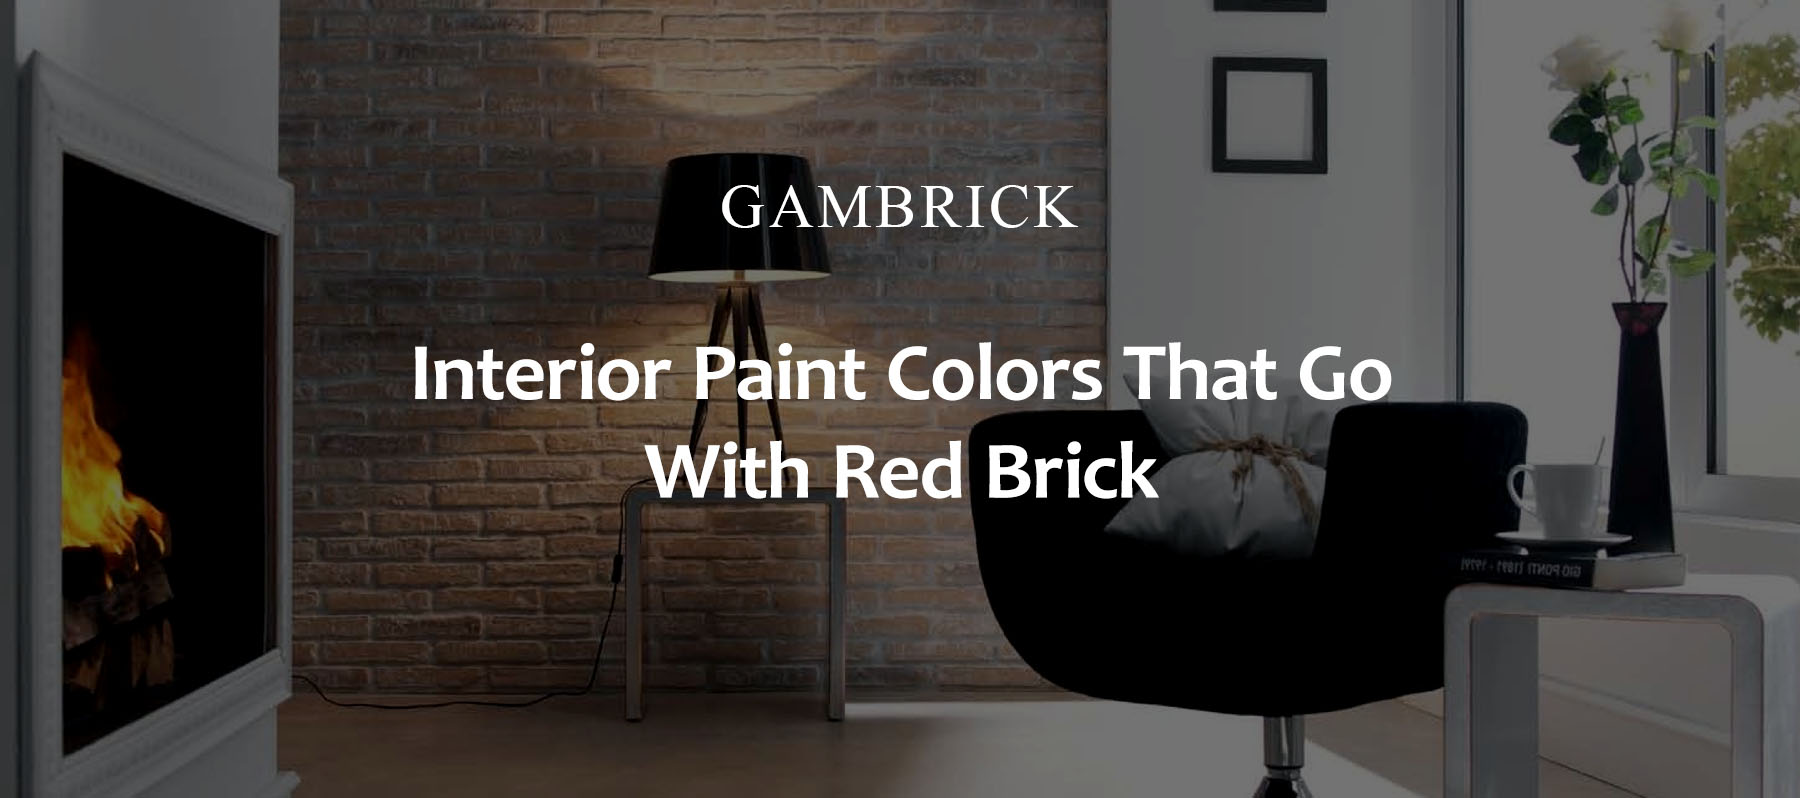 interior paint colors that go with red brick banner pic | Gambrick